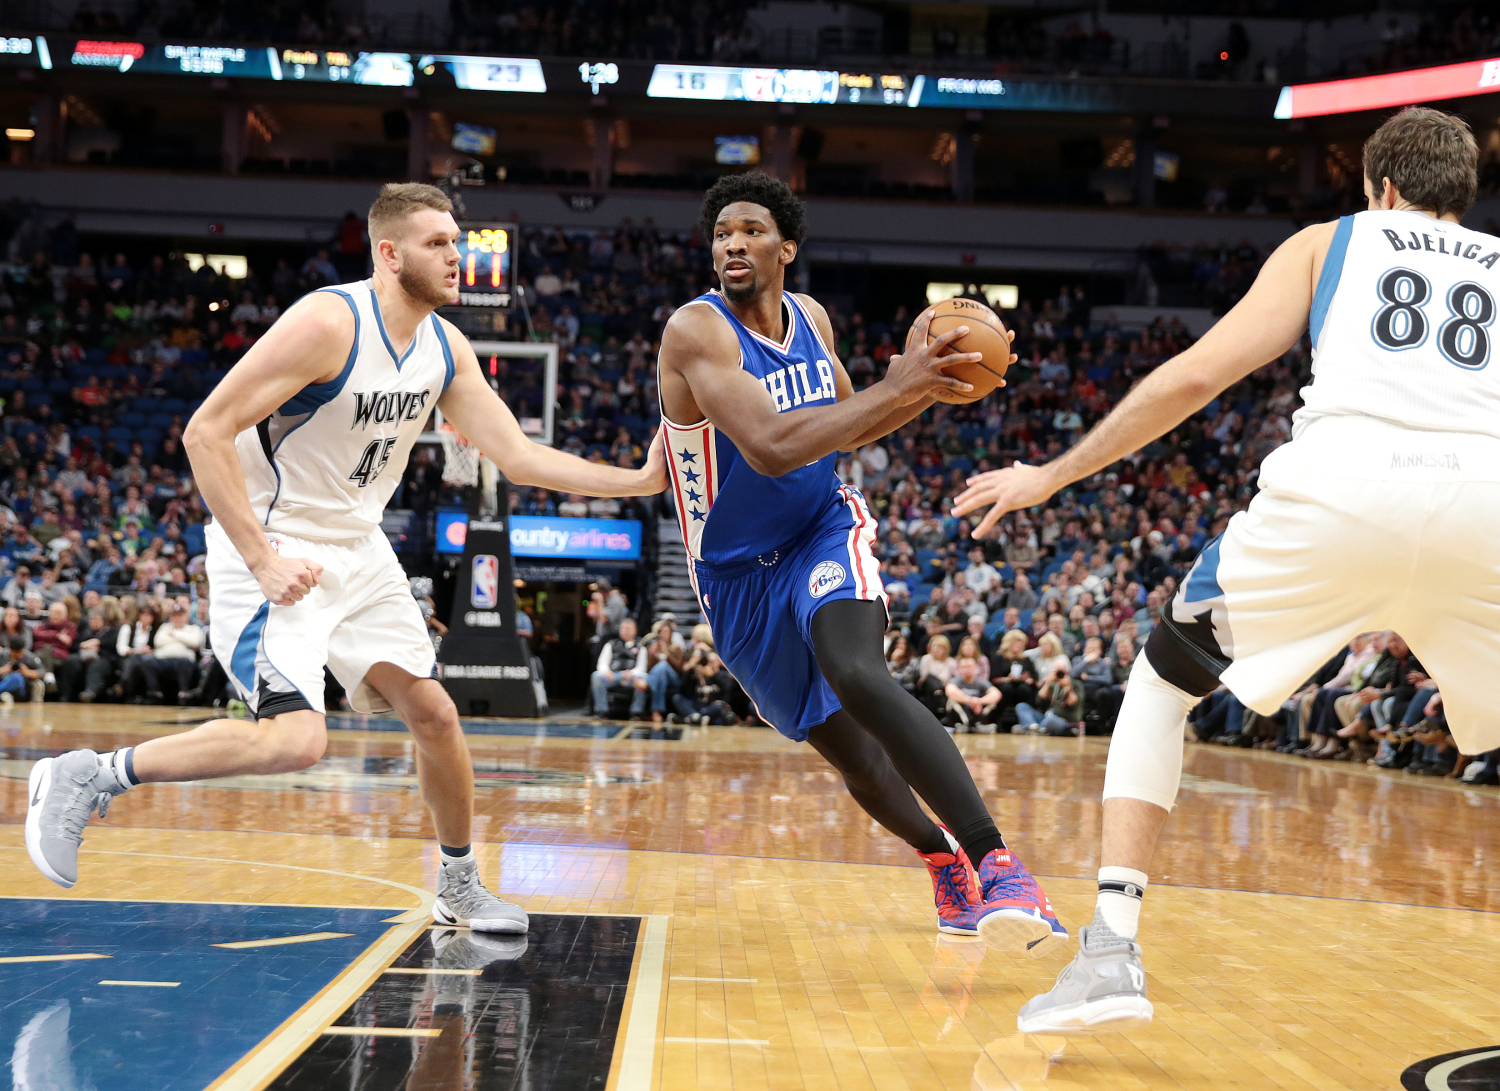 Game Preview: Wolves at 76ers